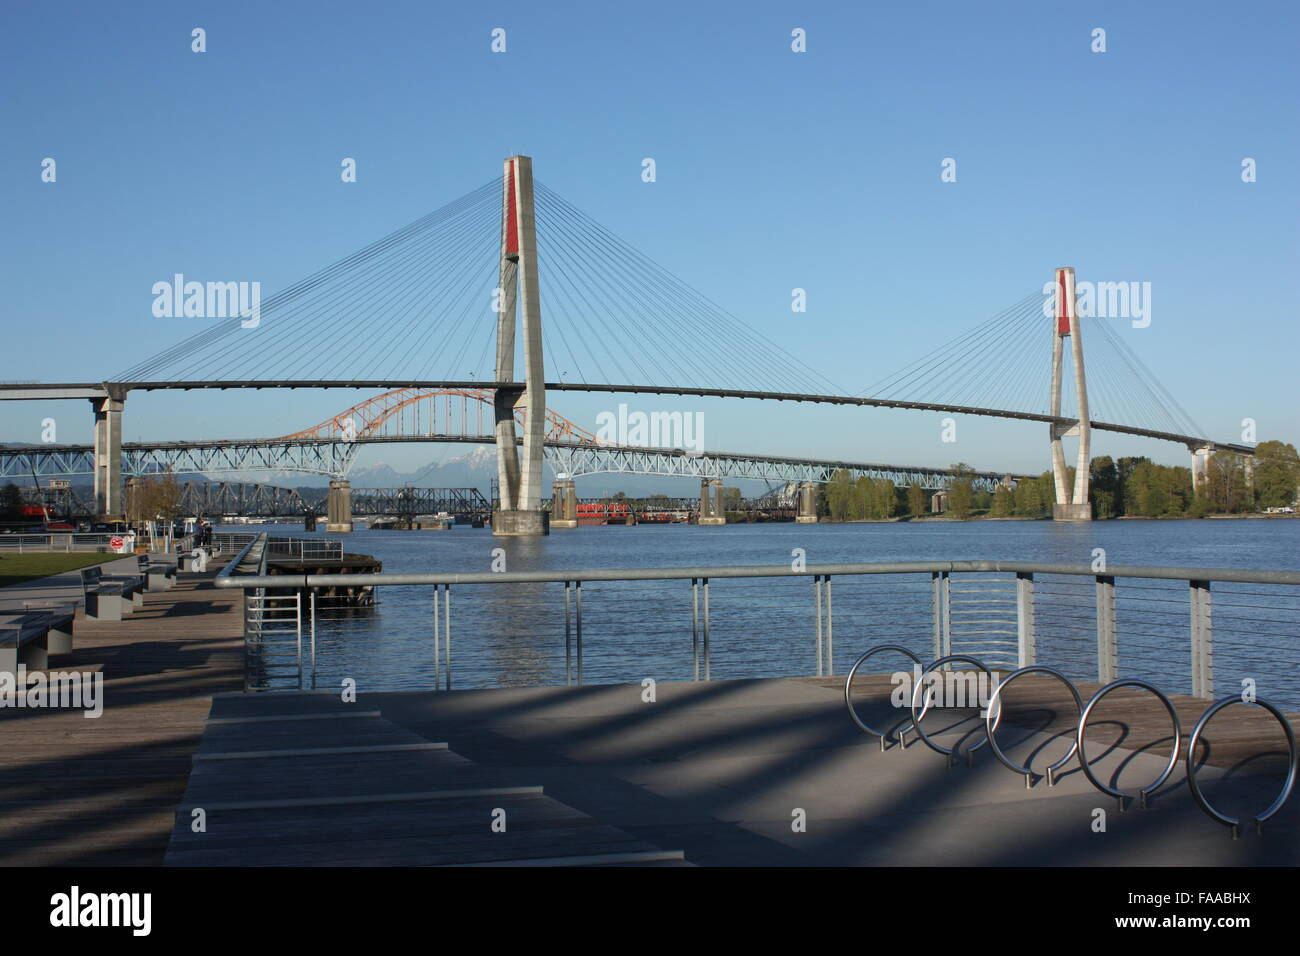 The Skytrain Bridge over the Fraser River in New Westminster seen from  Westminster Pier Park - Stock Image